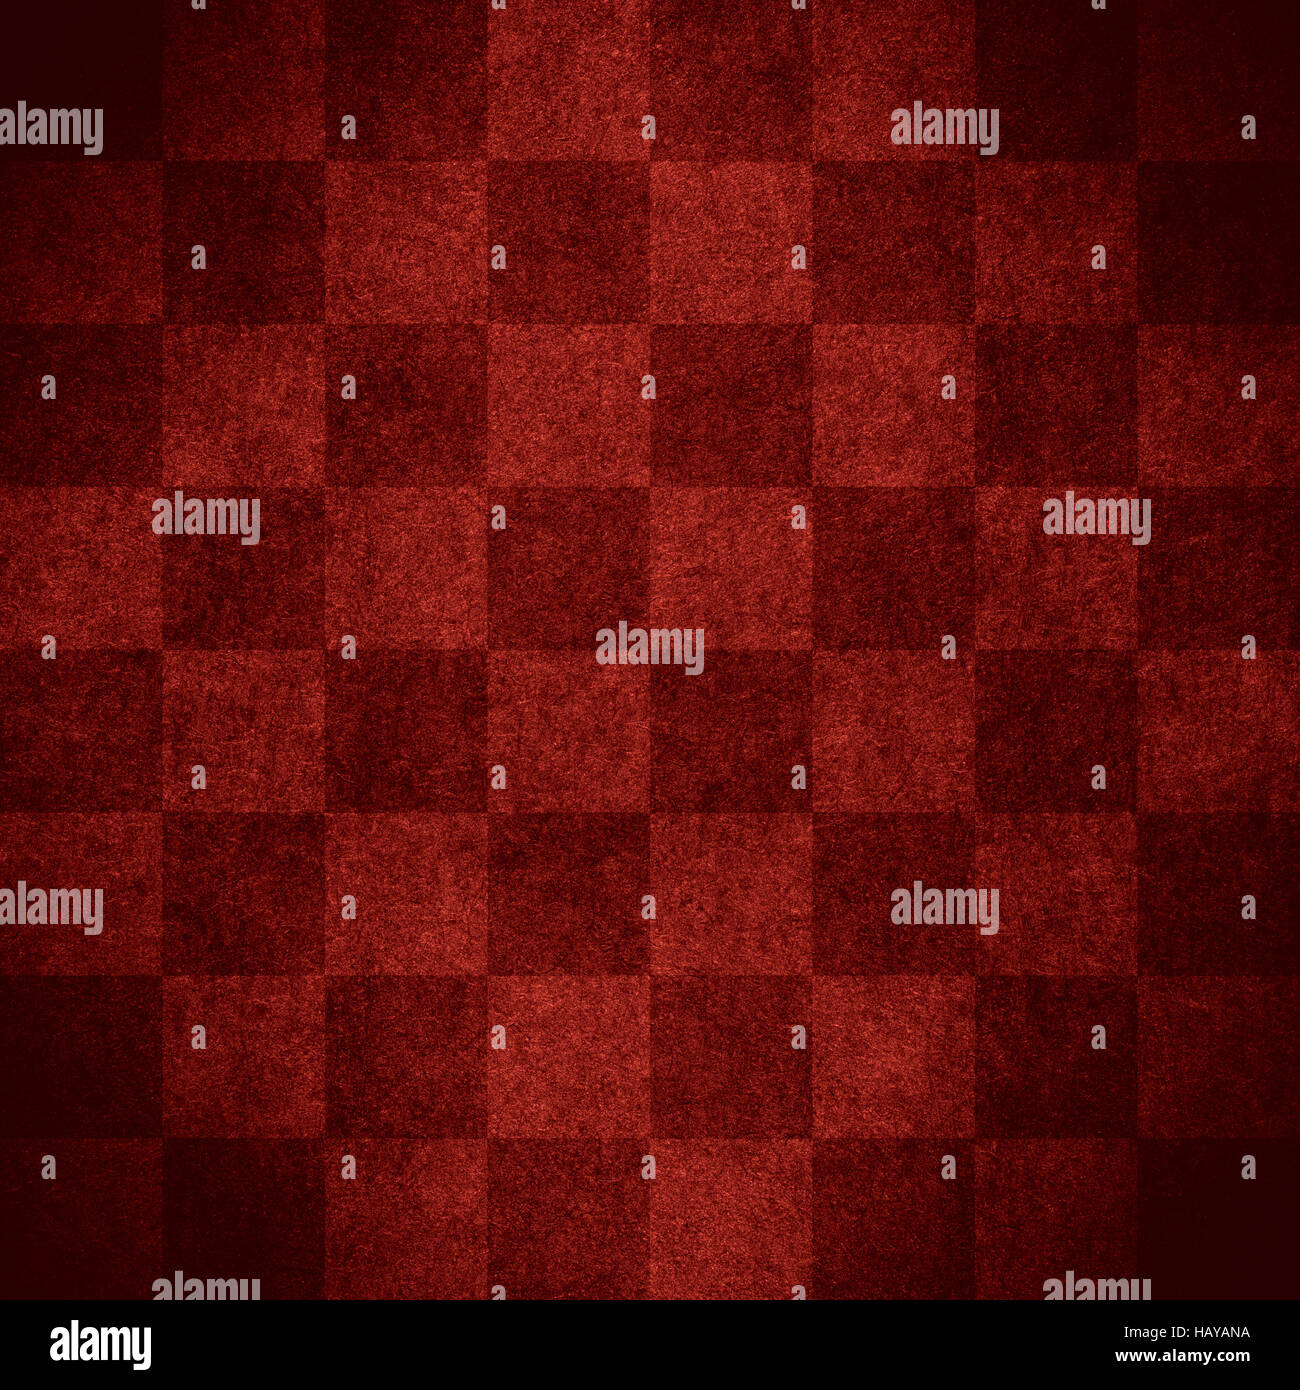 chequered pattern texture or red chessboard background, check - Stock Image